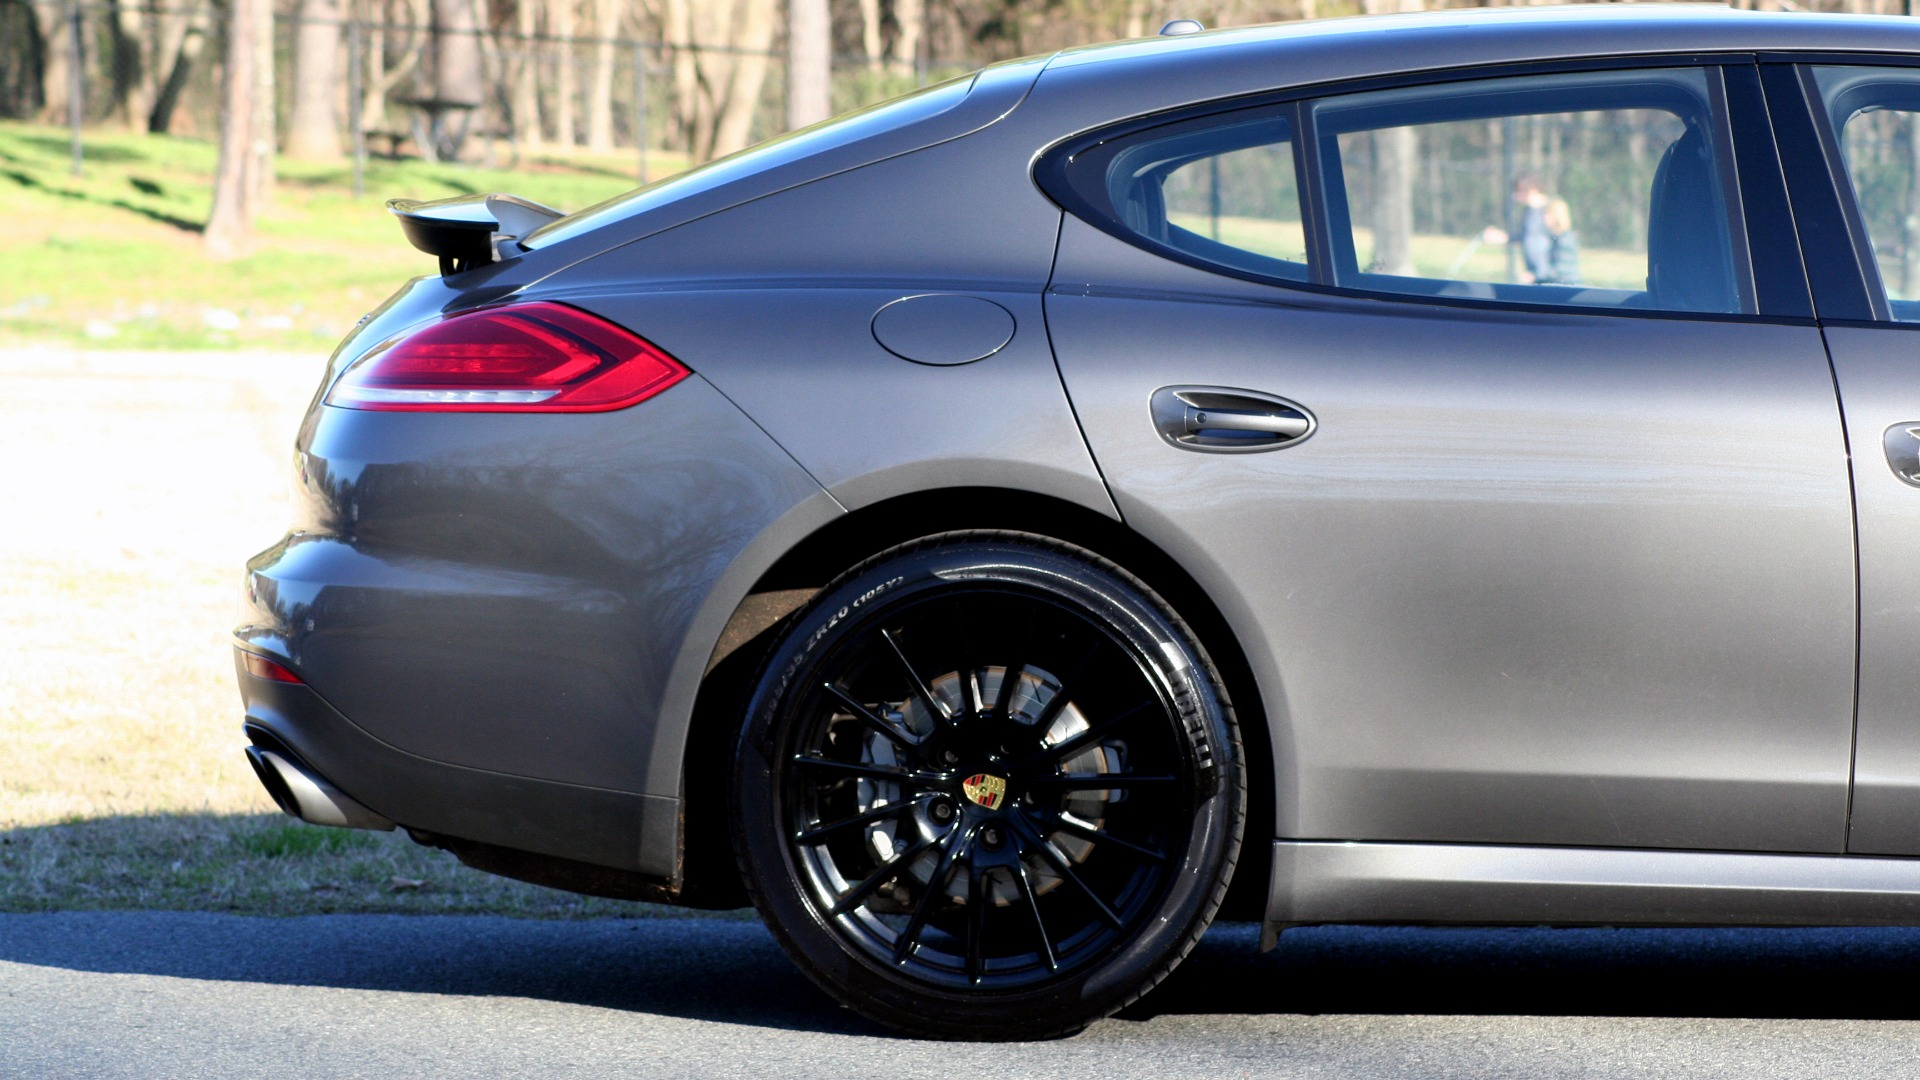 Used 2016 Porsche PANAMERA S / TURBO V6 / PDK / NAV / BOSE / SNRF / LDW / REARVIEW for sale Sold at Formula Imports in Charlotte NC 28227 19